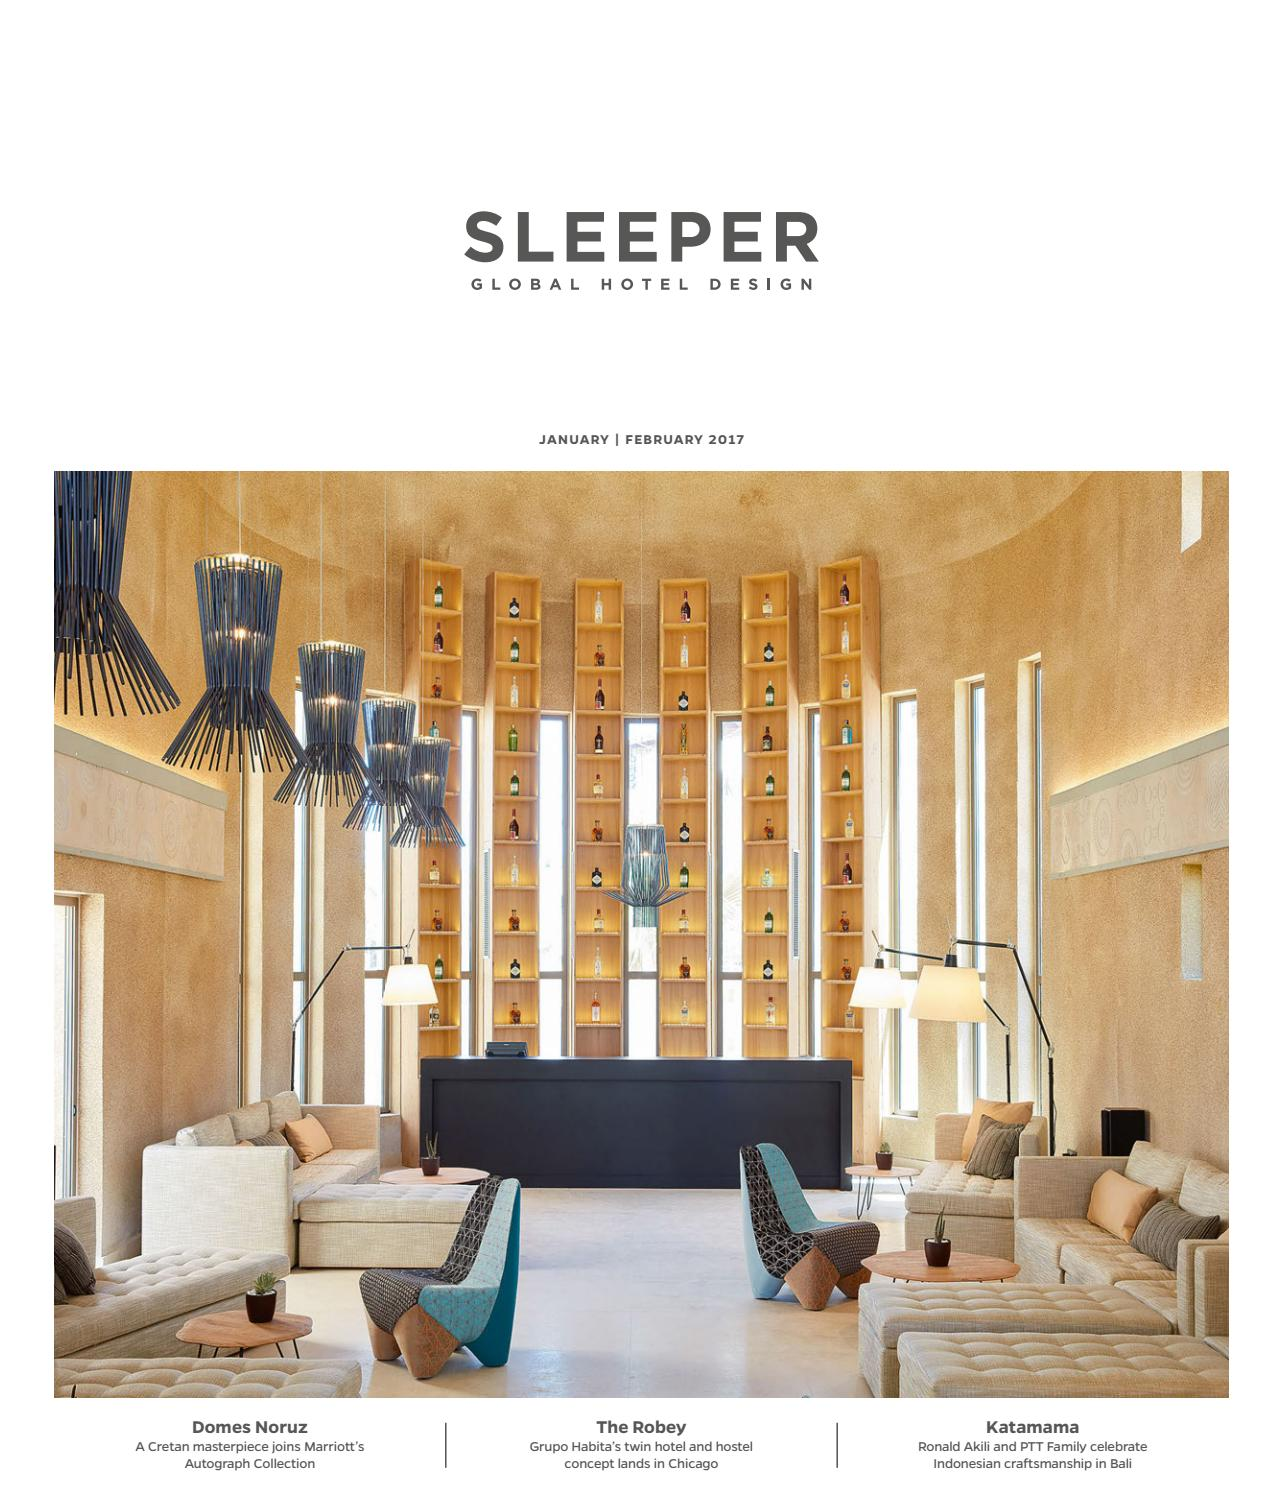 Sleeper january february 2017 issue 70 by mondiale publishing issuu